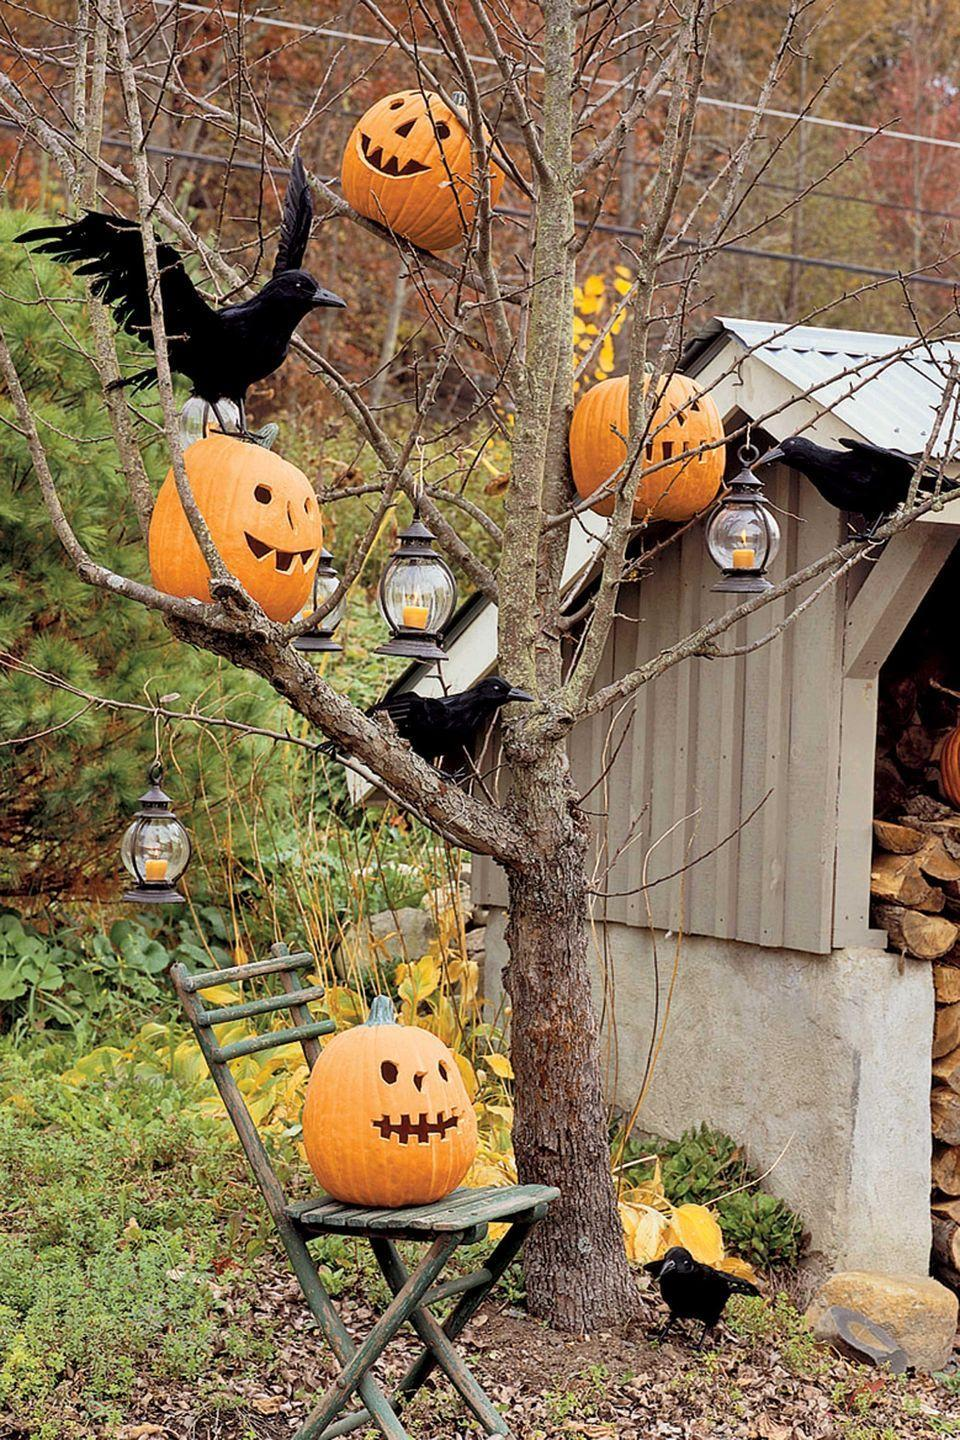 <p>Bare-limbed trees provide the perfect ghostly perch for jack-o'-lanterns, LED candle lanterns, and a flock of faux black crows. Make sure the tree limbs are sturdy enough to support the weight of the items you are hanging and take care not to over-decorate, which can lessen the overall effect. Funkins (Styrofoam pumpkins) are an especially good choice for this project, since they're lightweight and won't rot. </p>